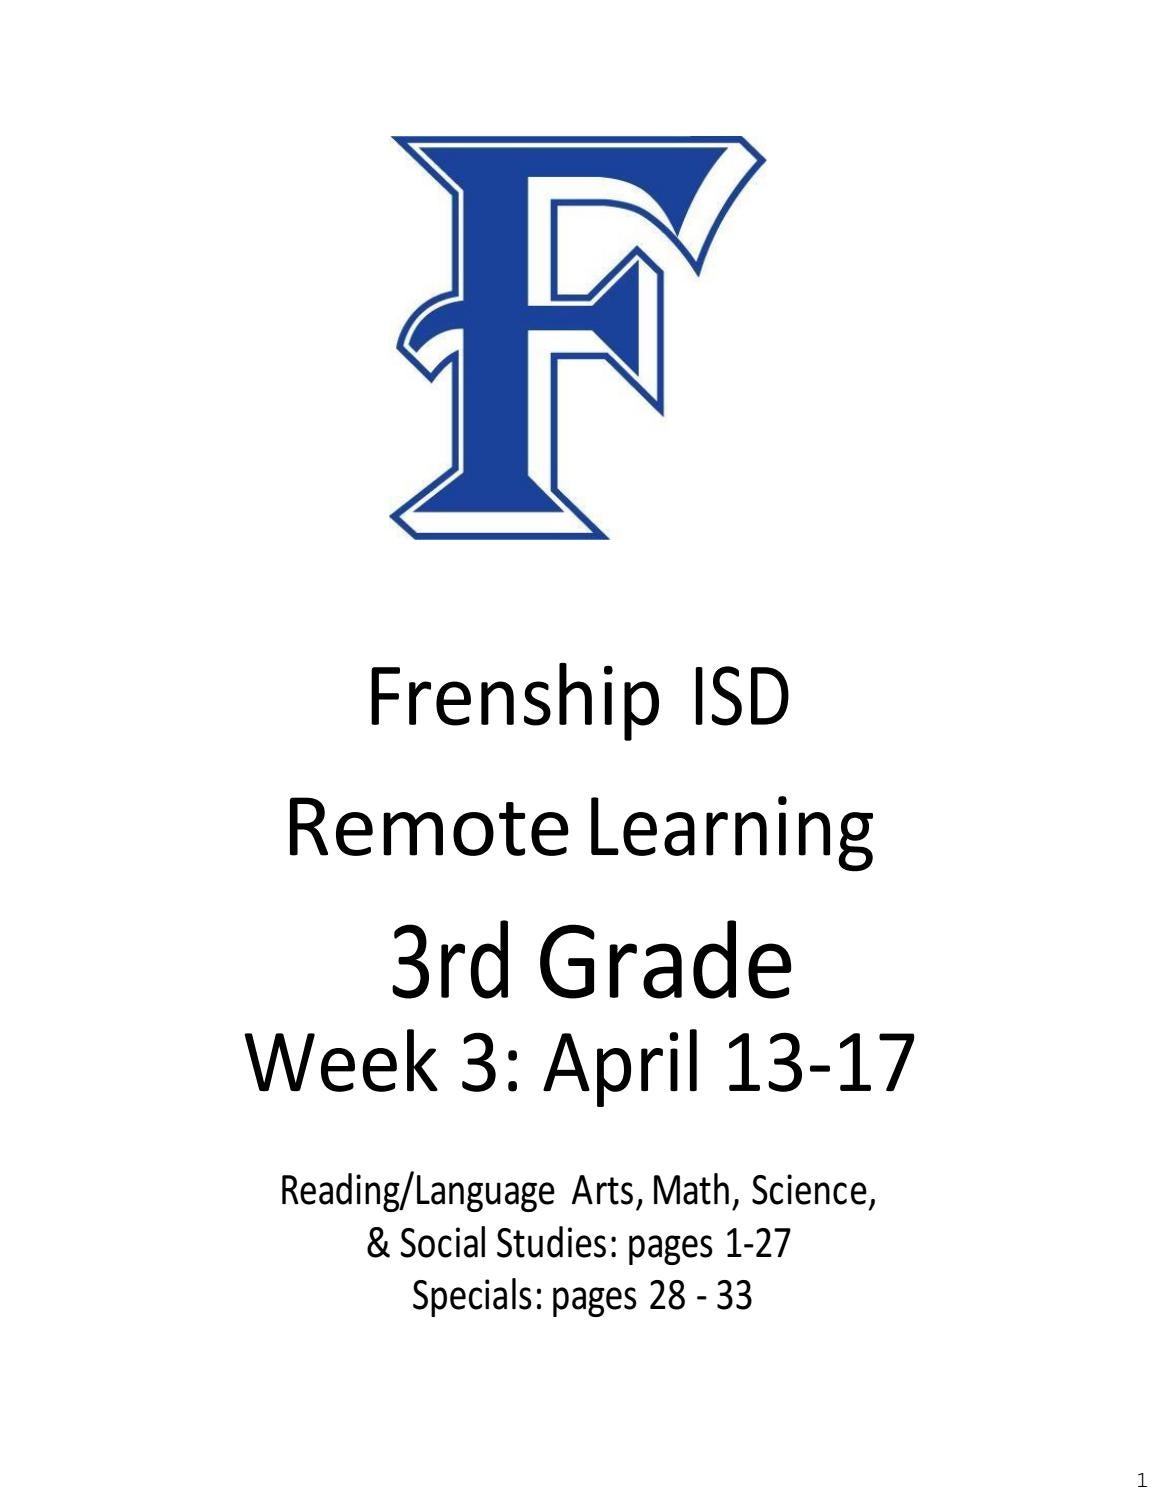 hight resolution of 3rd Grade Remote Learning April 13-17 by frenshipisd - issuu